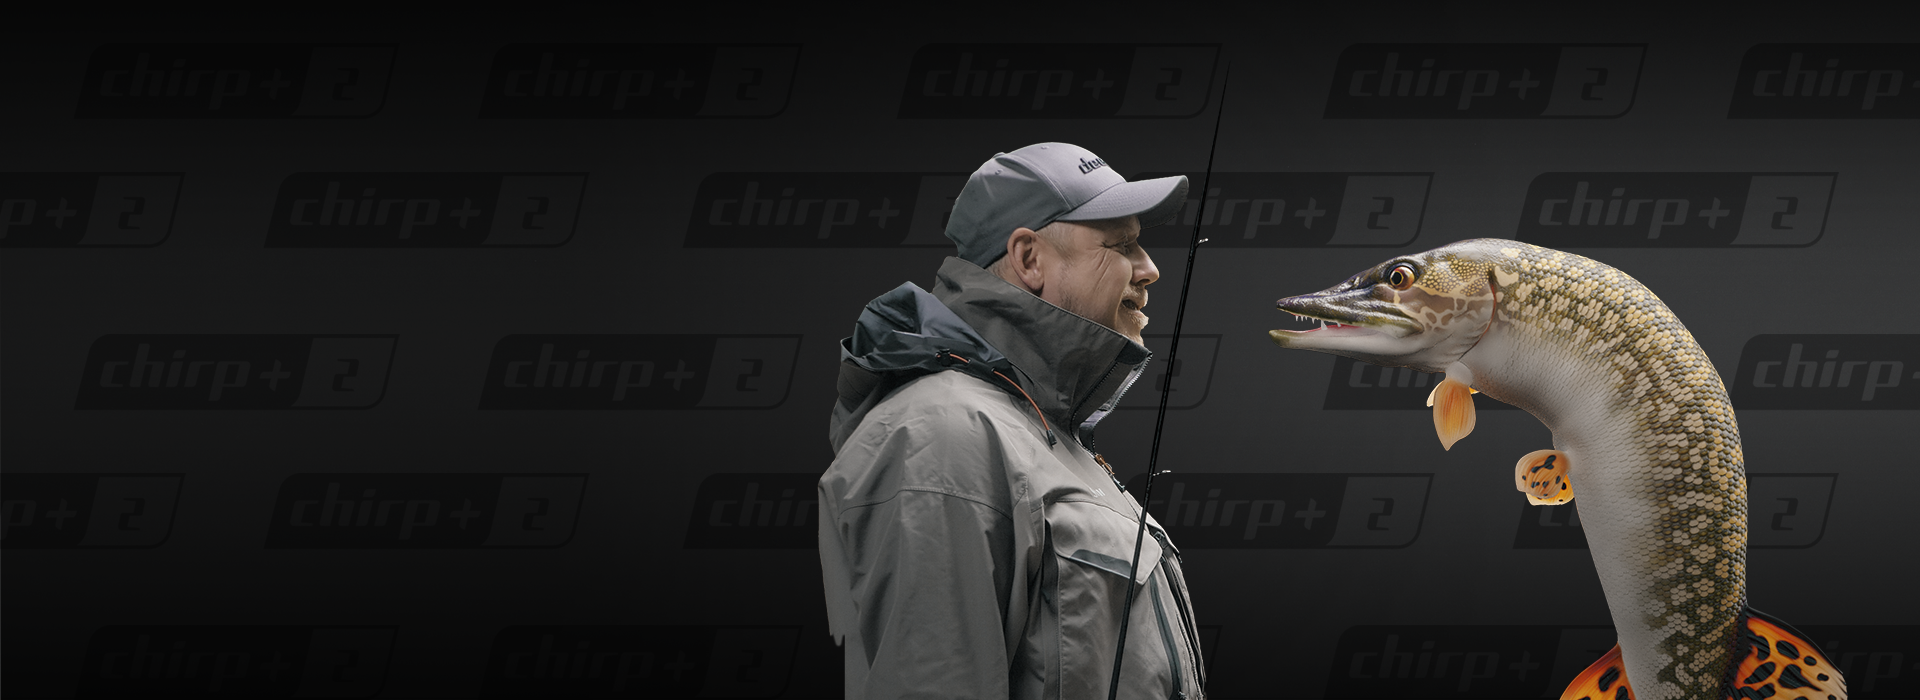 Can't wait to face the fish? Make it happen with the new Deeper CHIRP+ 2!